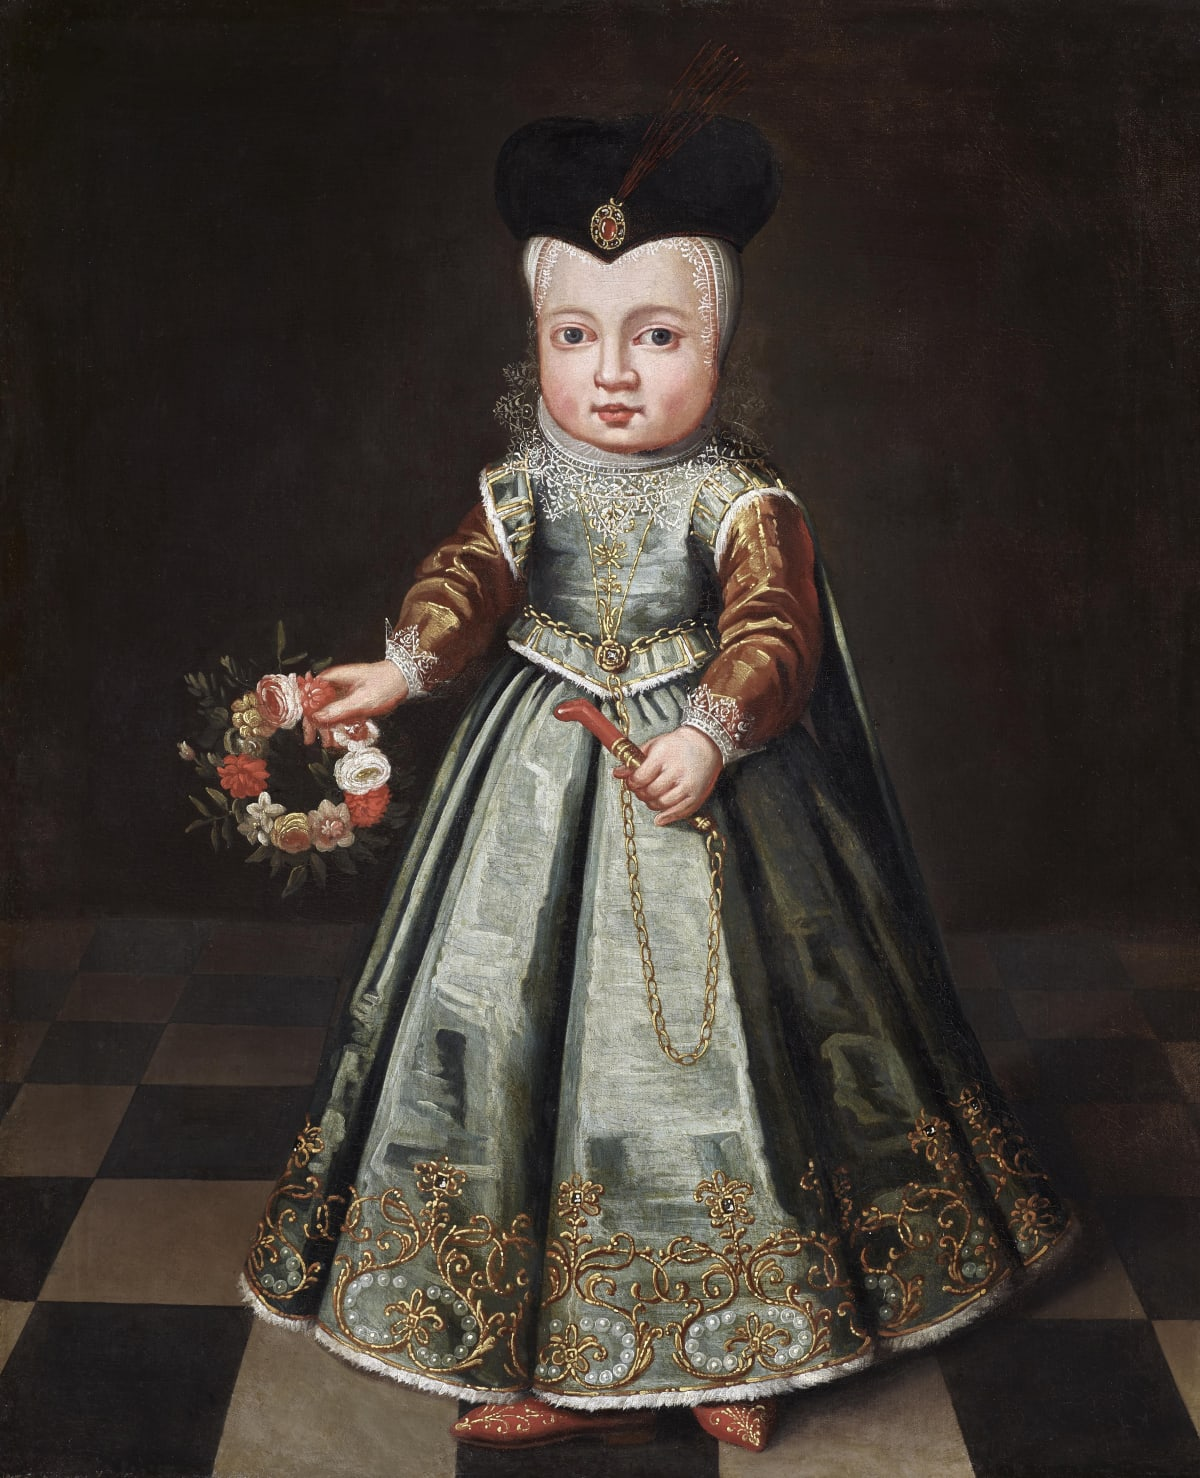 Dutch School, c. 1620 A noble child with a garland of flowers and coral teething toy , c.1620 Oil on canvas 30 1/8 x 25 in.